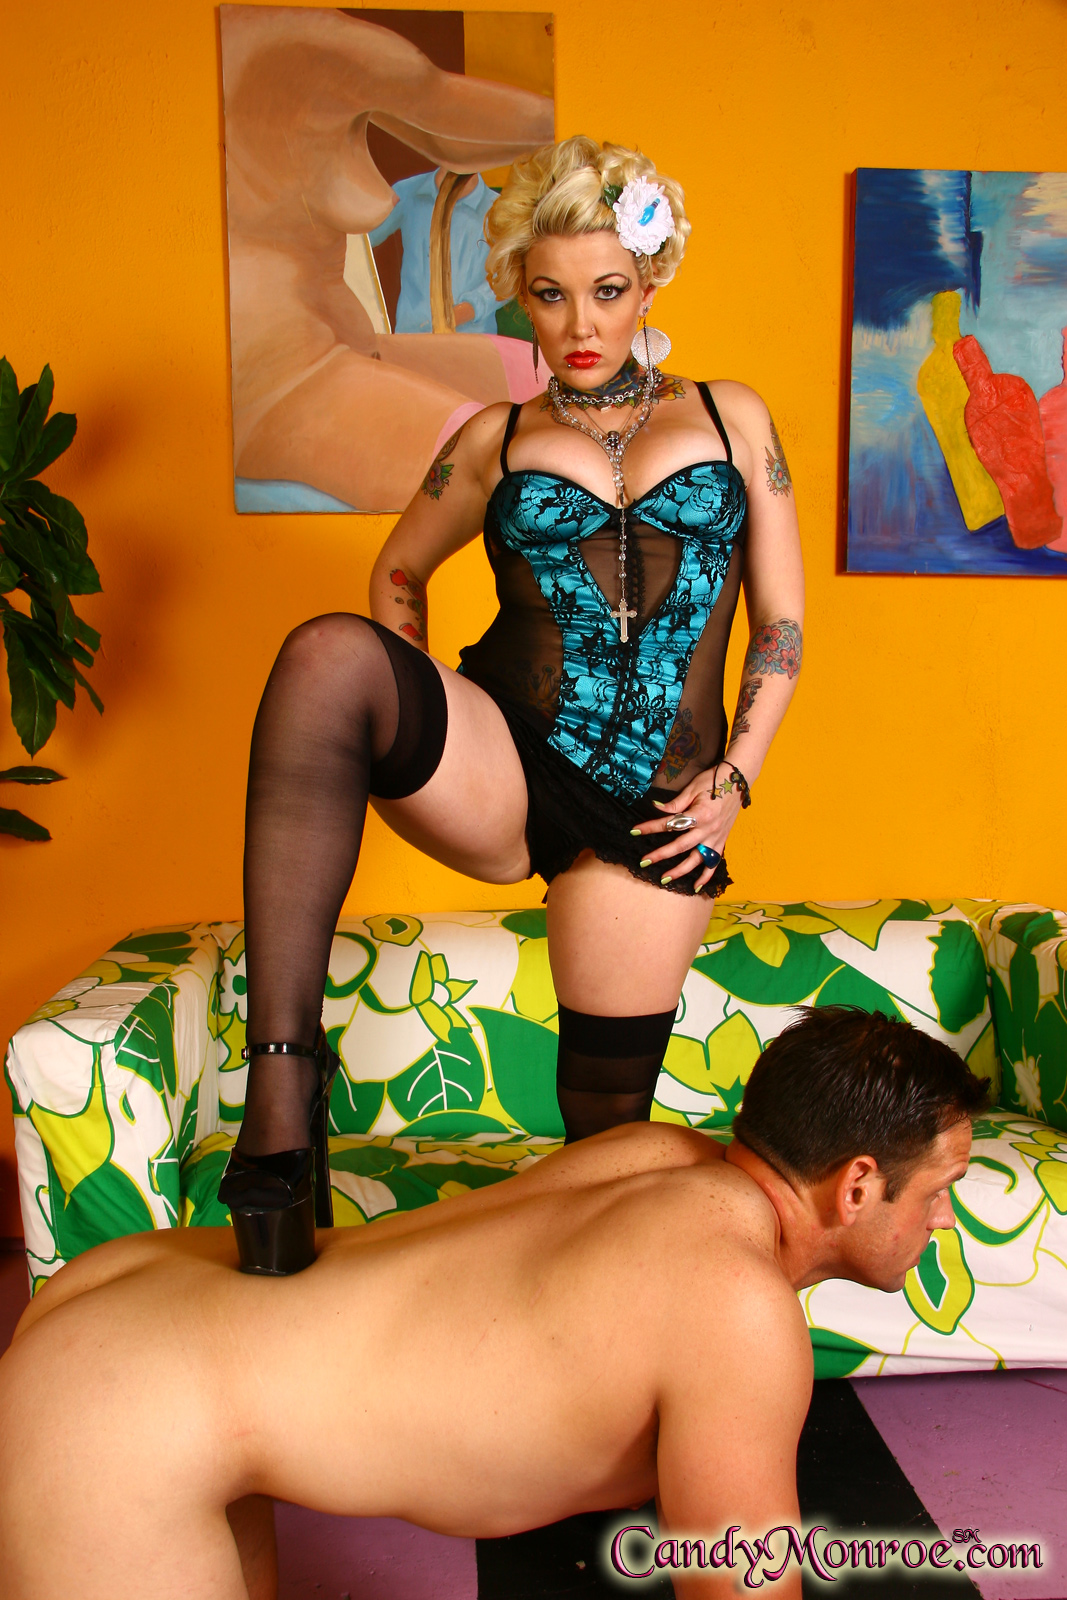 Saras 1st Timewhile Her Cuckold Partner Watches